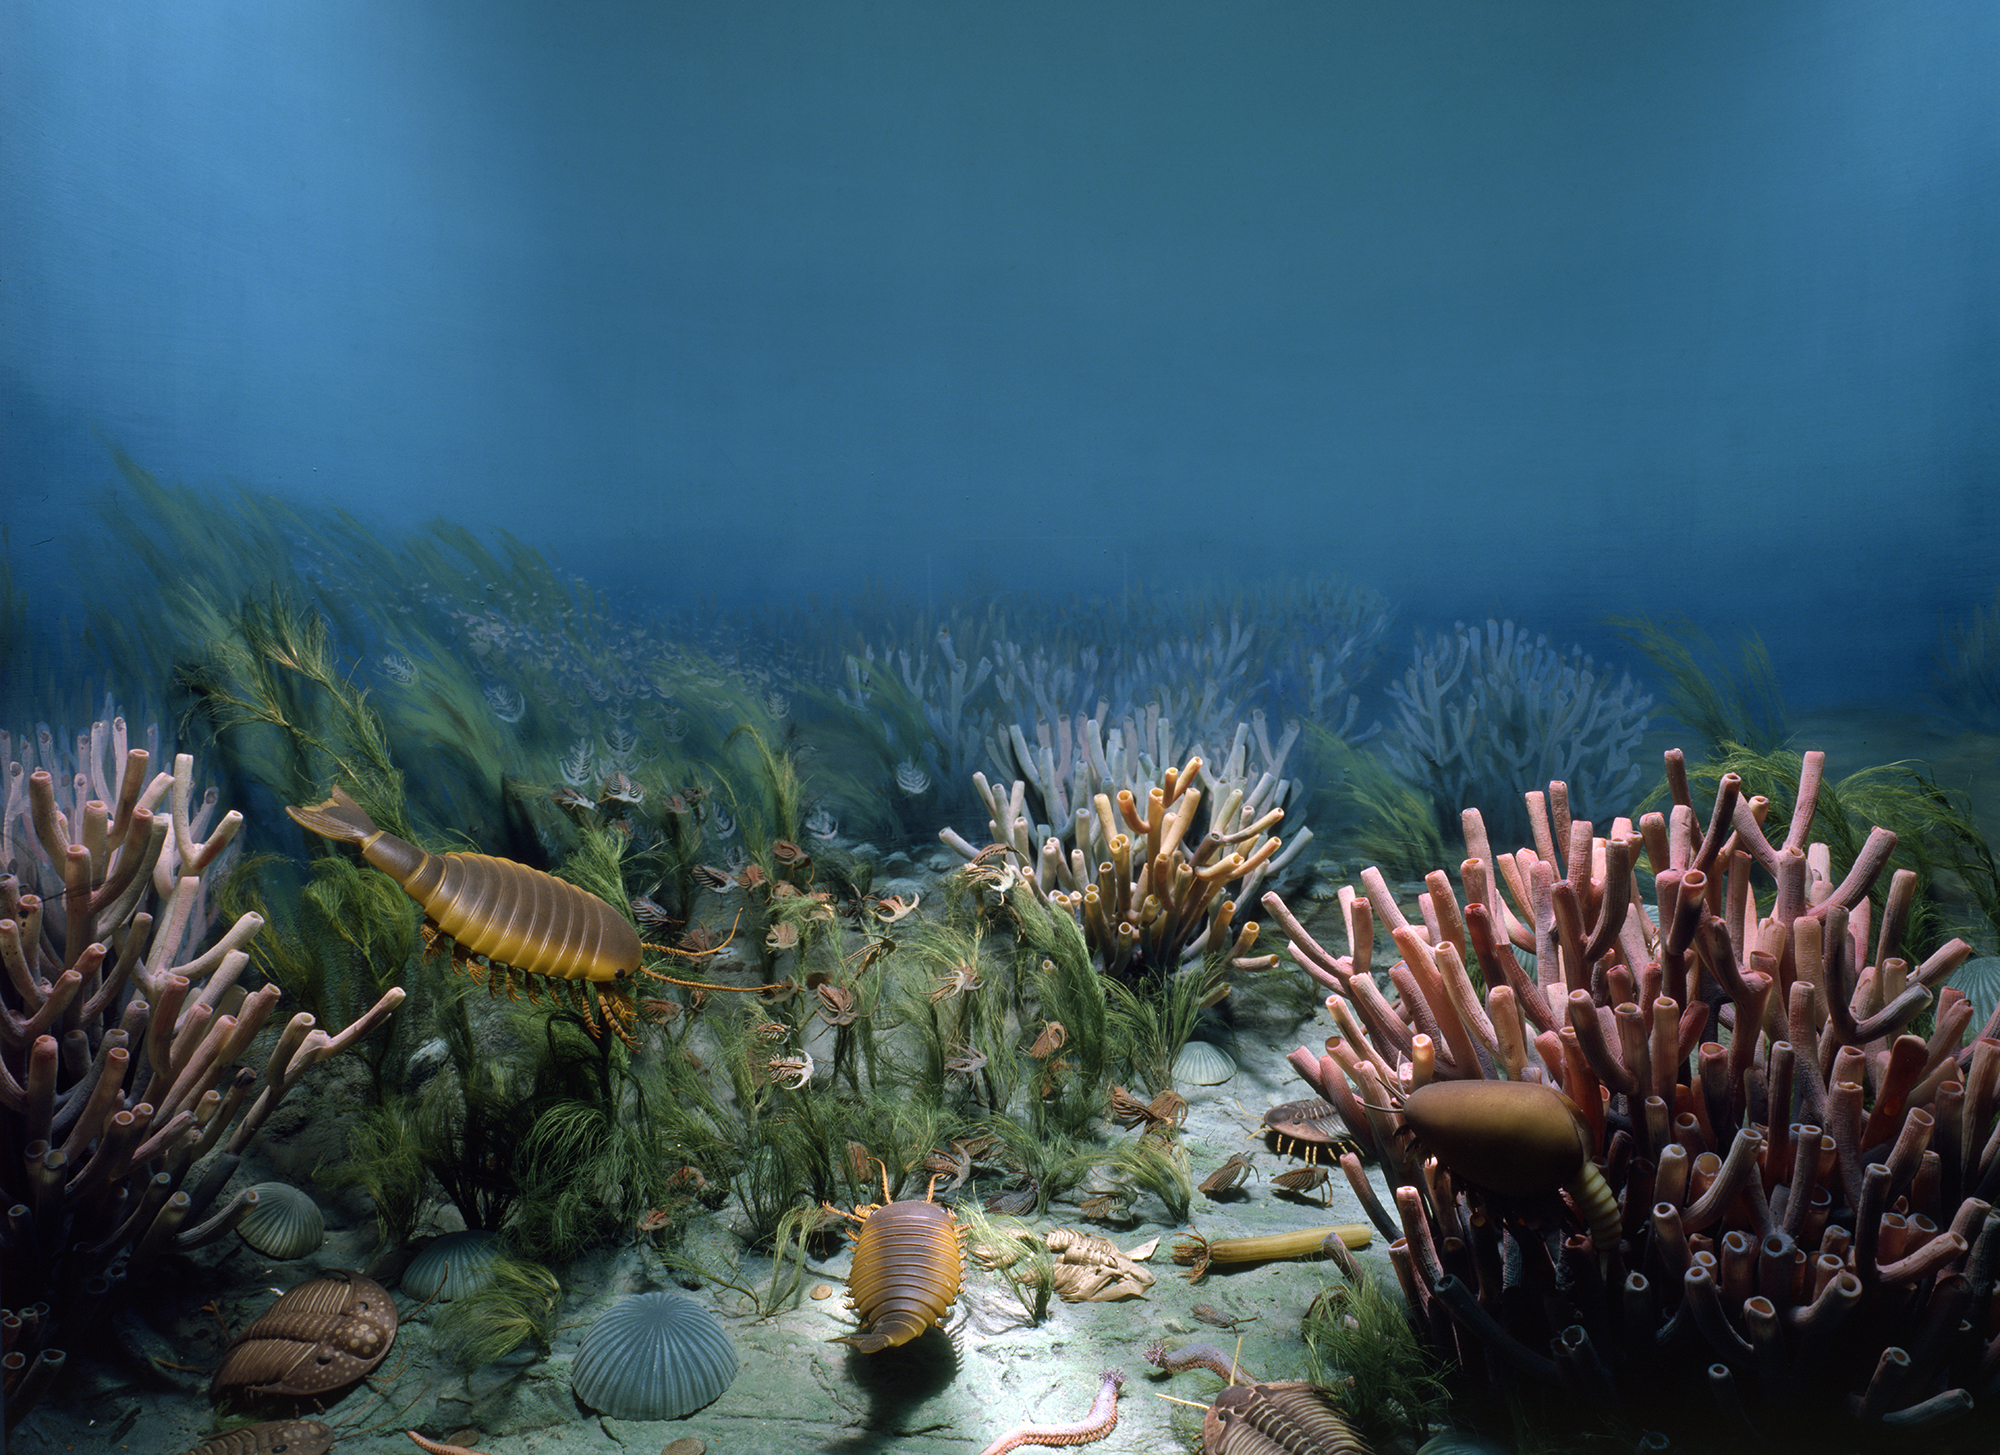 Middle Cambrian Life diorama, 500 million years ago. Models of seaweed, sponges, sea cucumbers, brachiopods, worm, trilobites and crustaceans.  Fine grained shale bed from British Columbia. Hall 37. Fossil invertebrates.